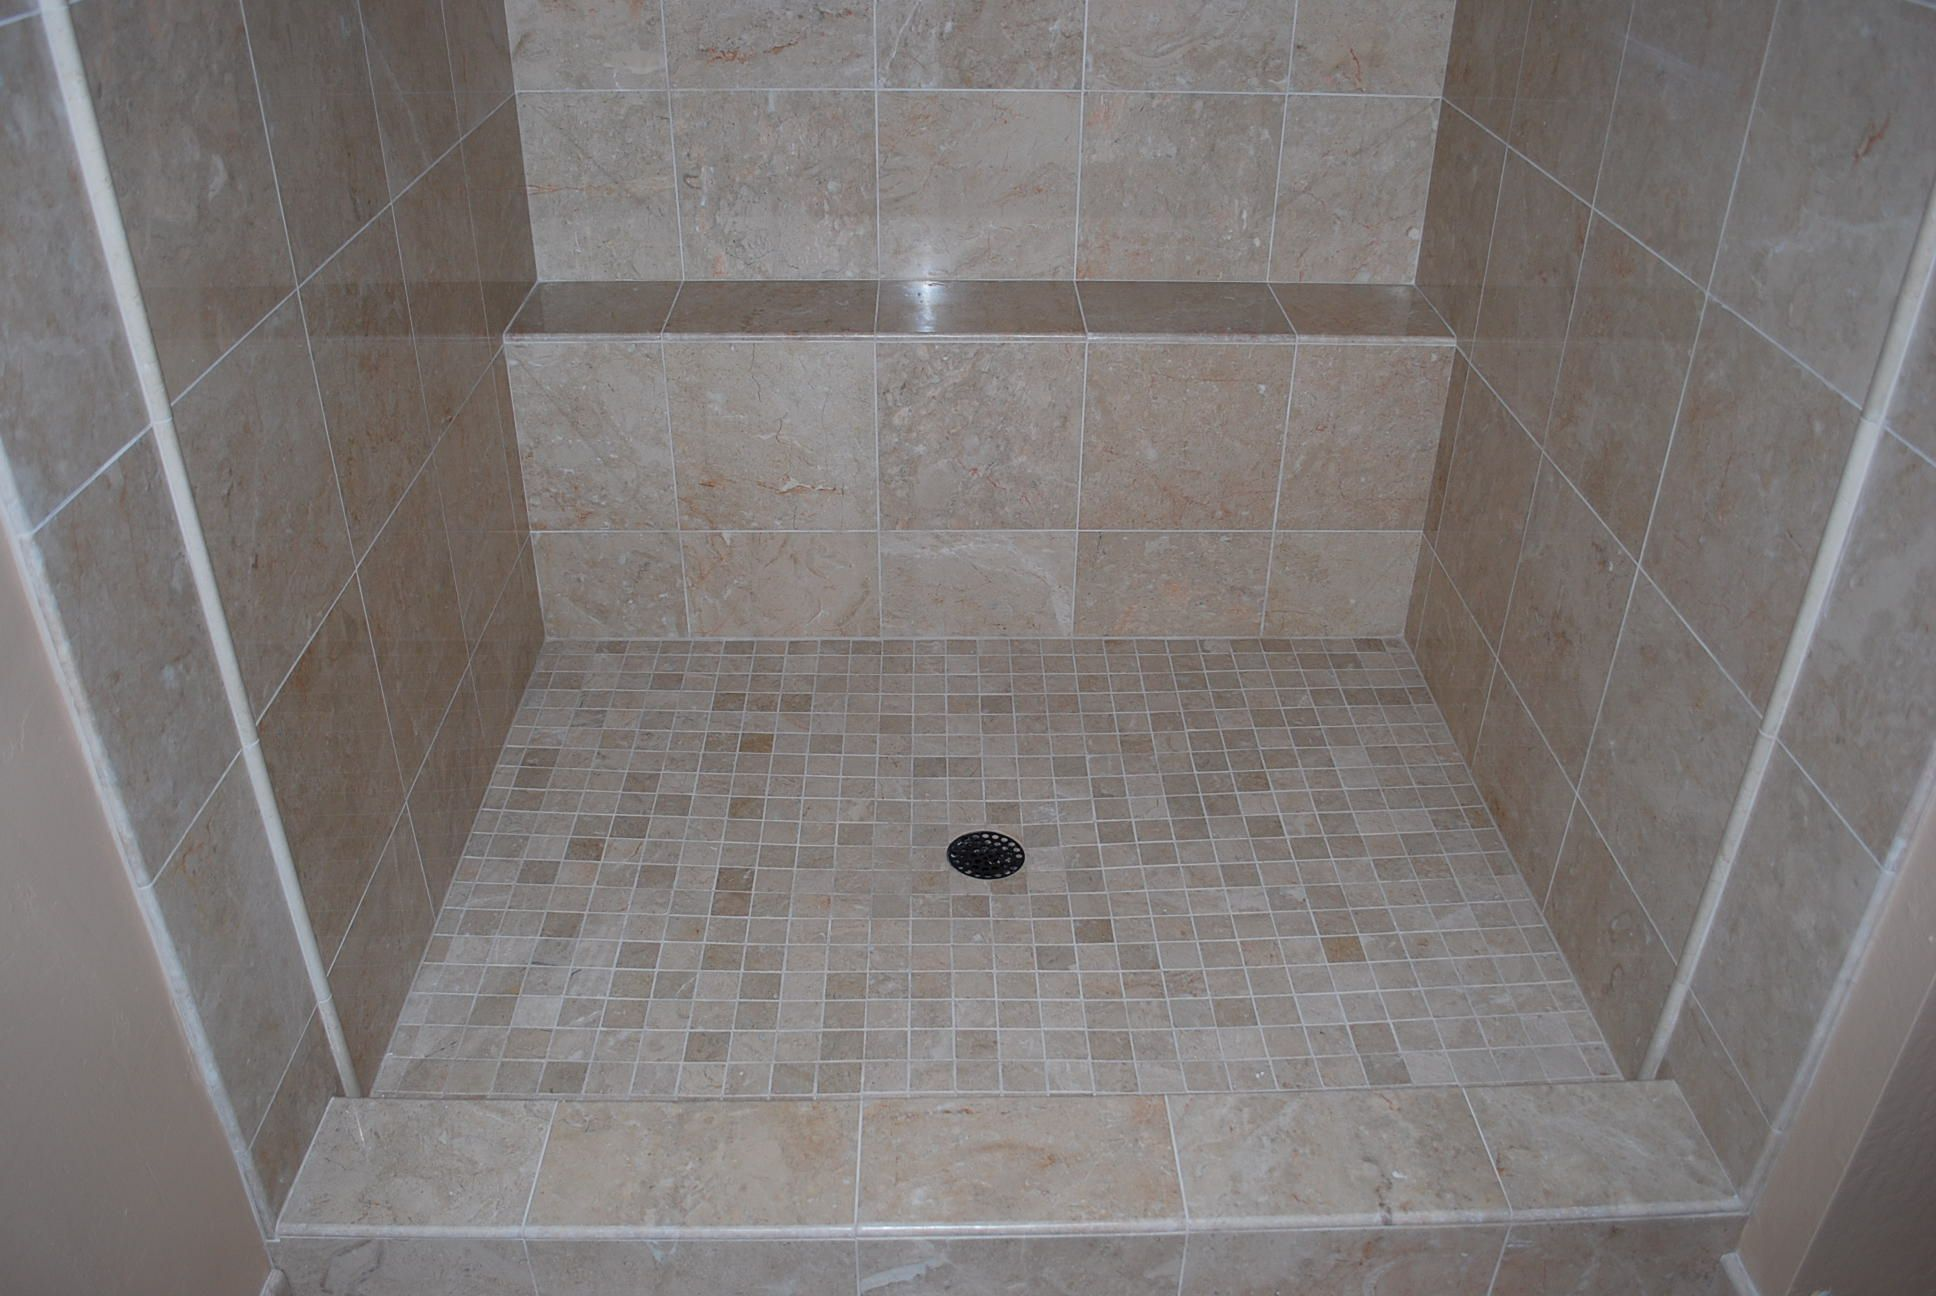 Pin By Kbrs Inc On Shower Seats Bench Seats Ready To Tile